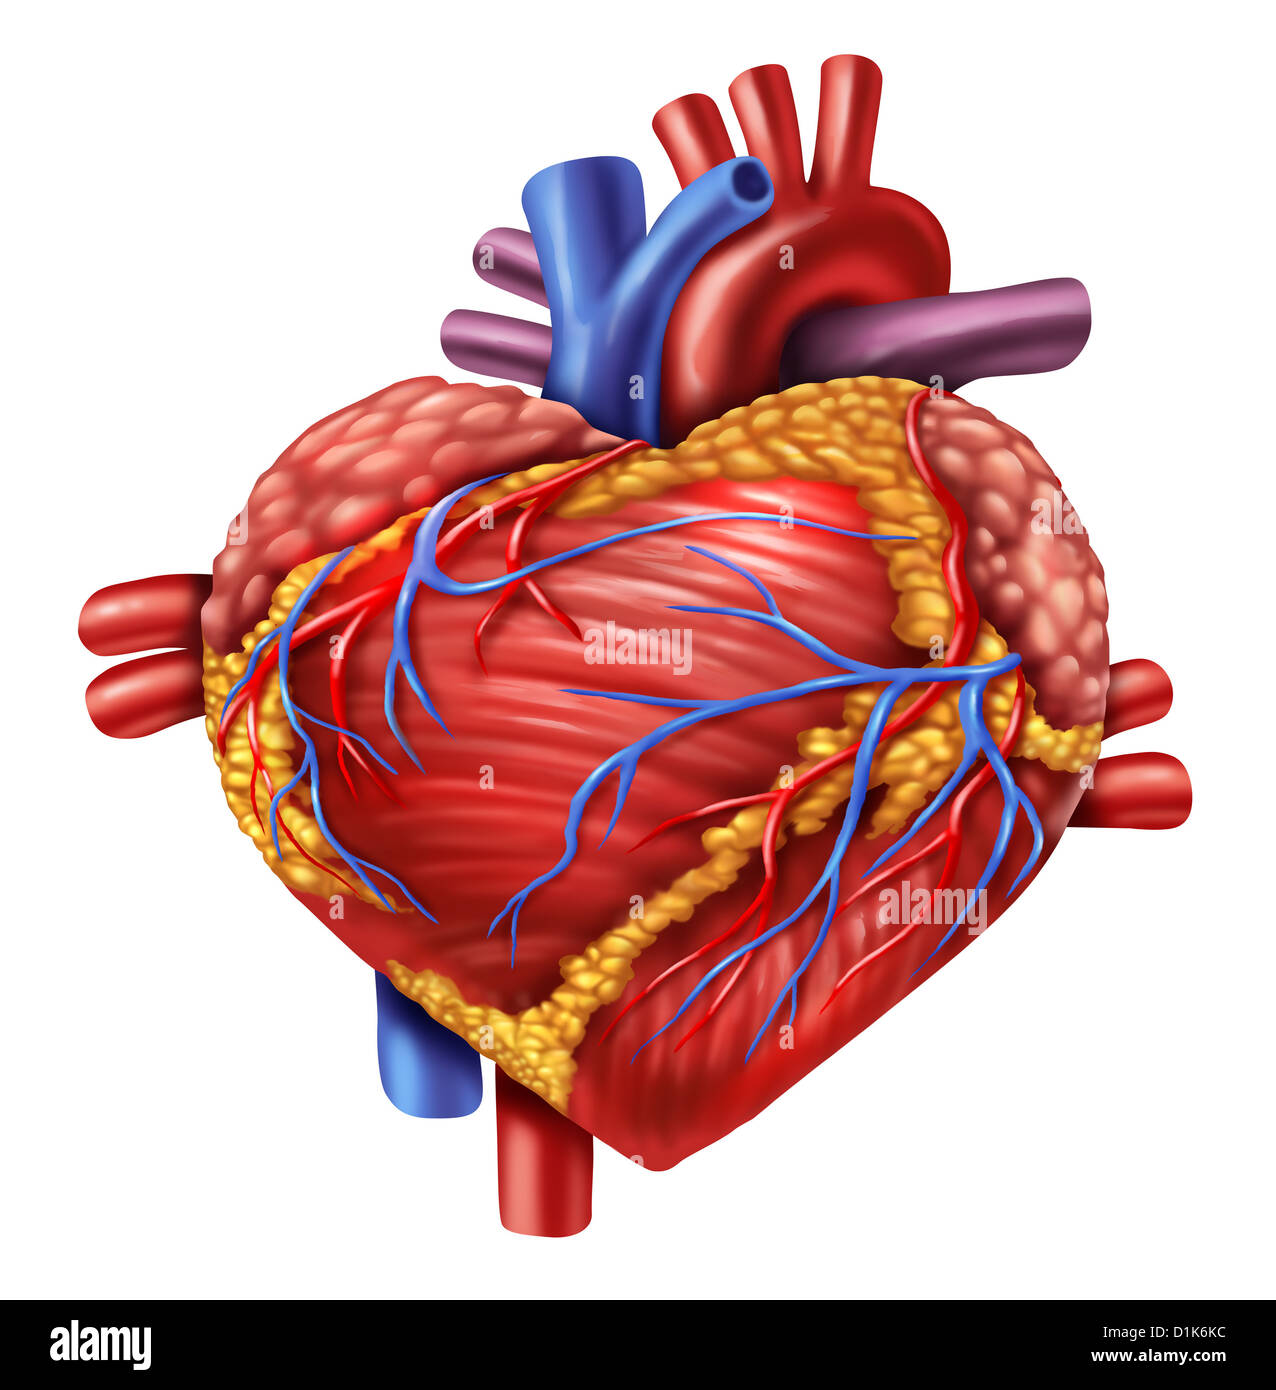 Human Heart In The Shape Of A Love Symbol Using The Organ From The